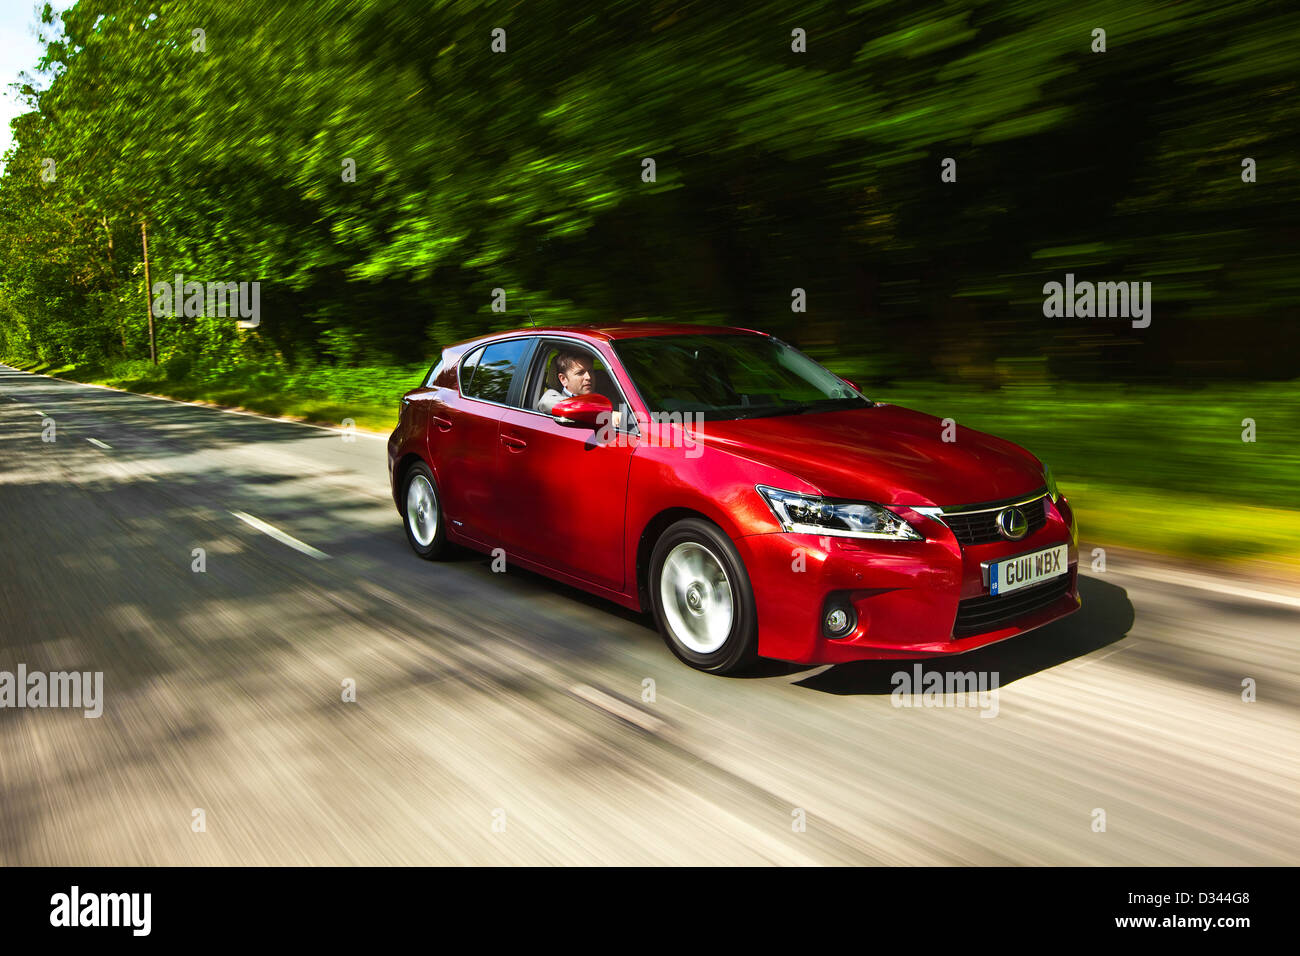 James Martin test drives the Lexus CT 200h hatchback, Winchester, UK, 13 05 2010 - Stock Image